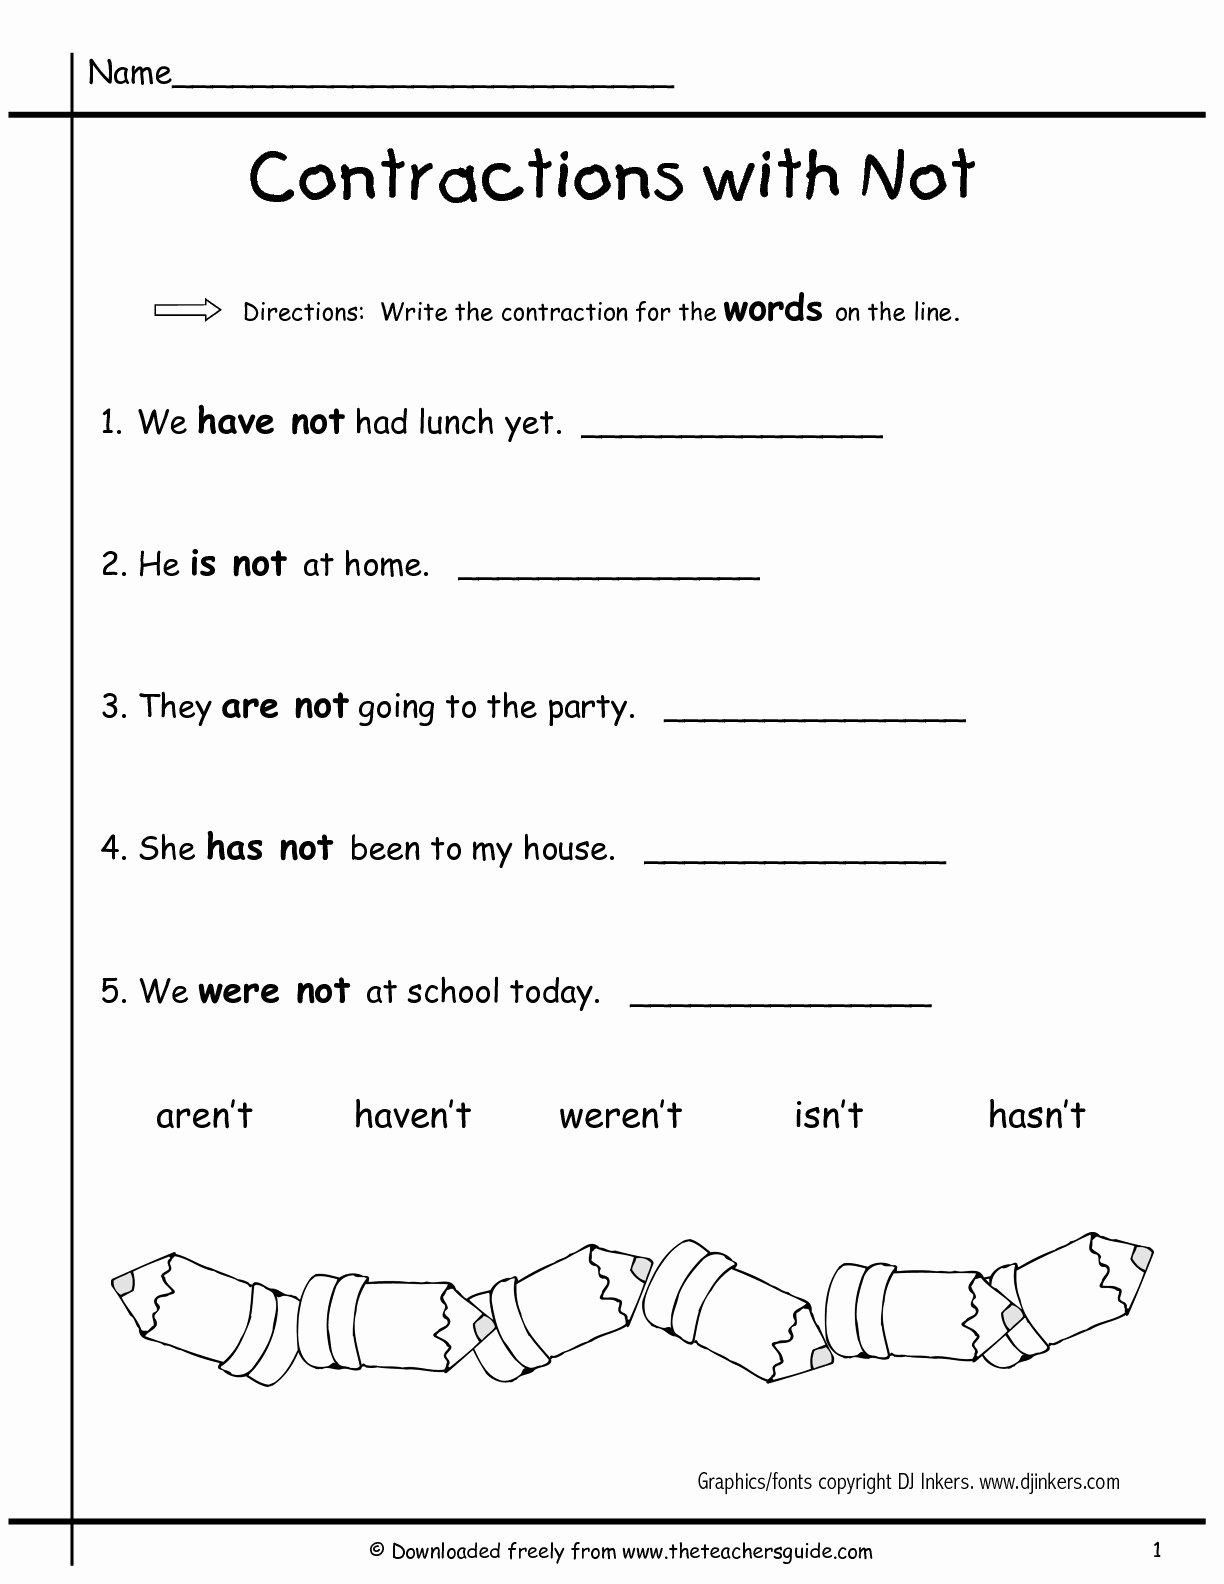 Contractions Worksheet 3rd Grade Lovely 38 Contractions Worksheets for Improving Your Grammar